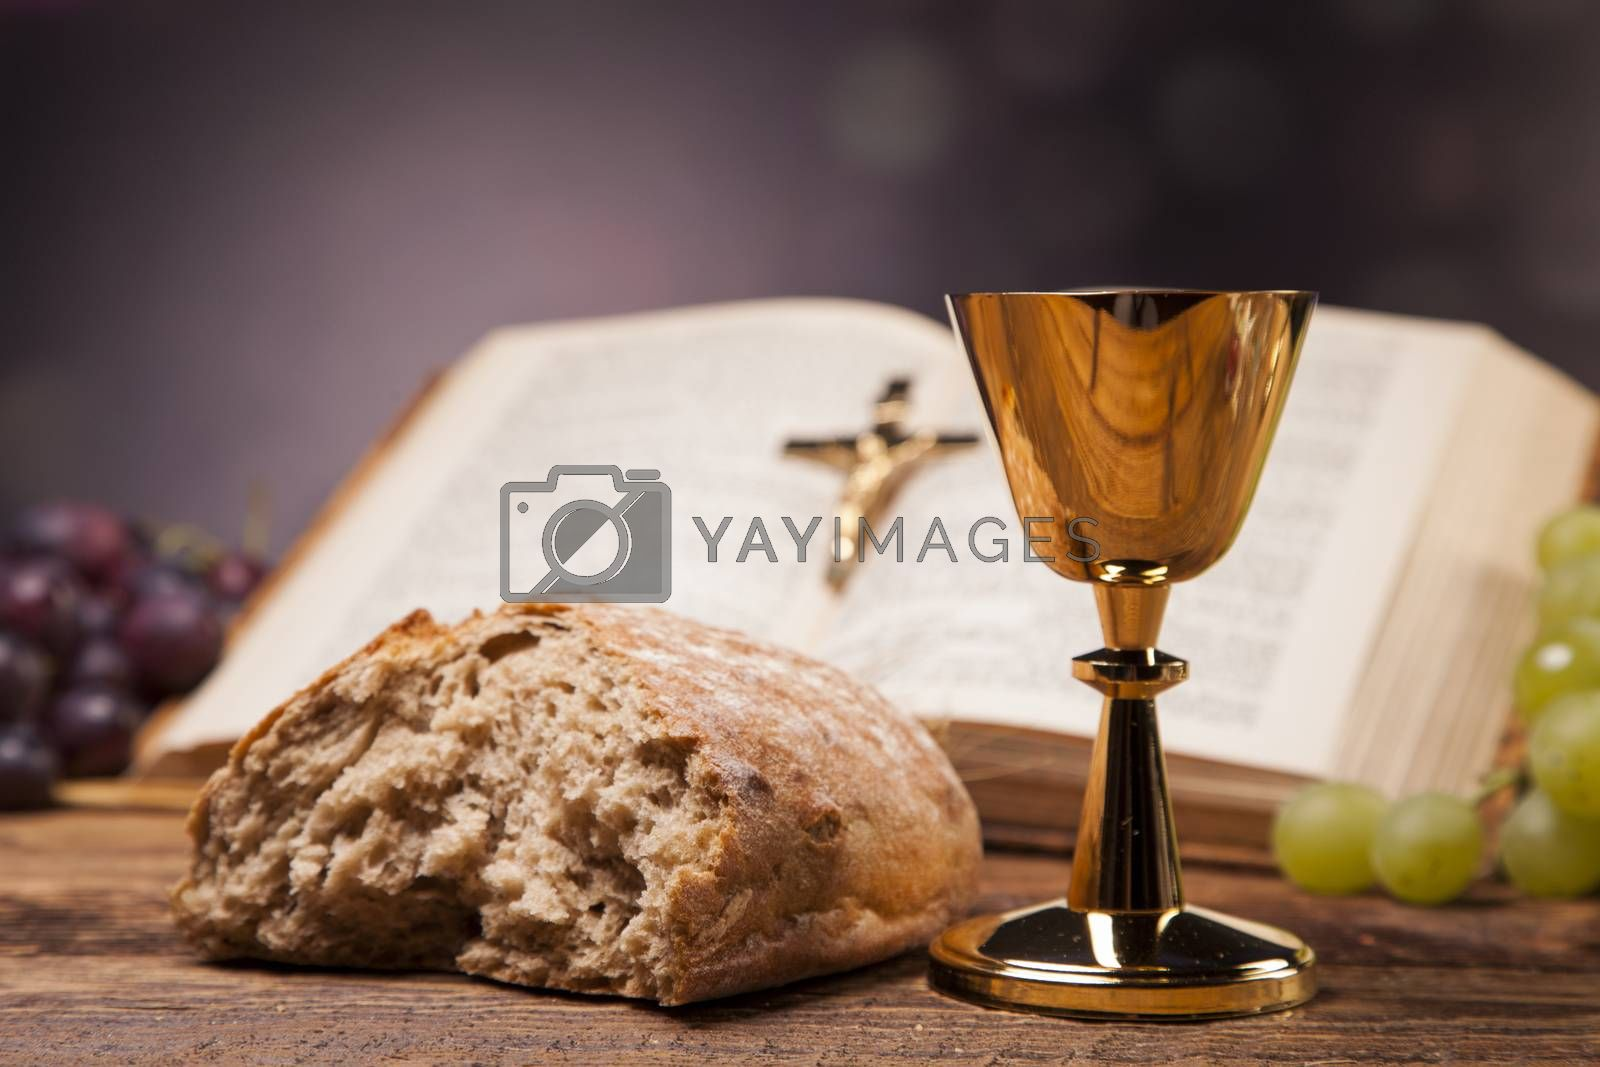 Christian religion, wine, bread and the word of God on yellow background by fikmik